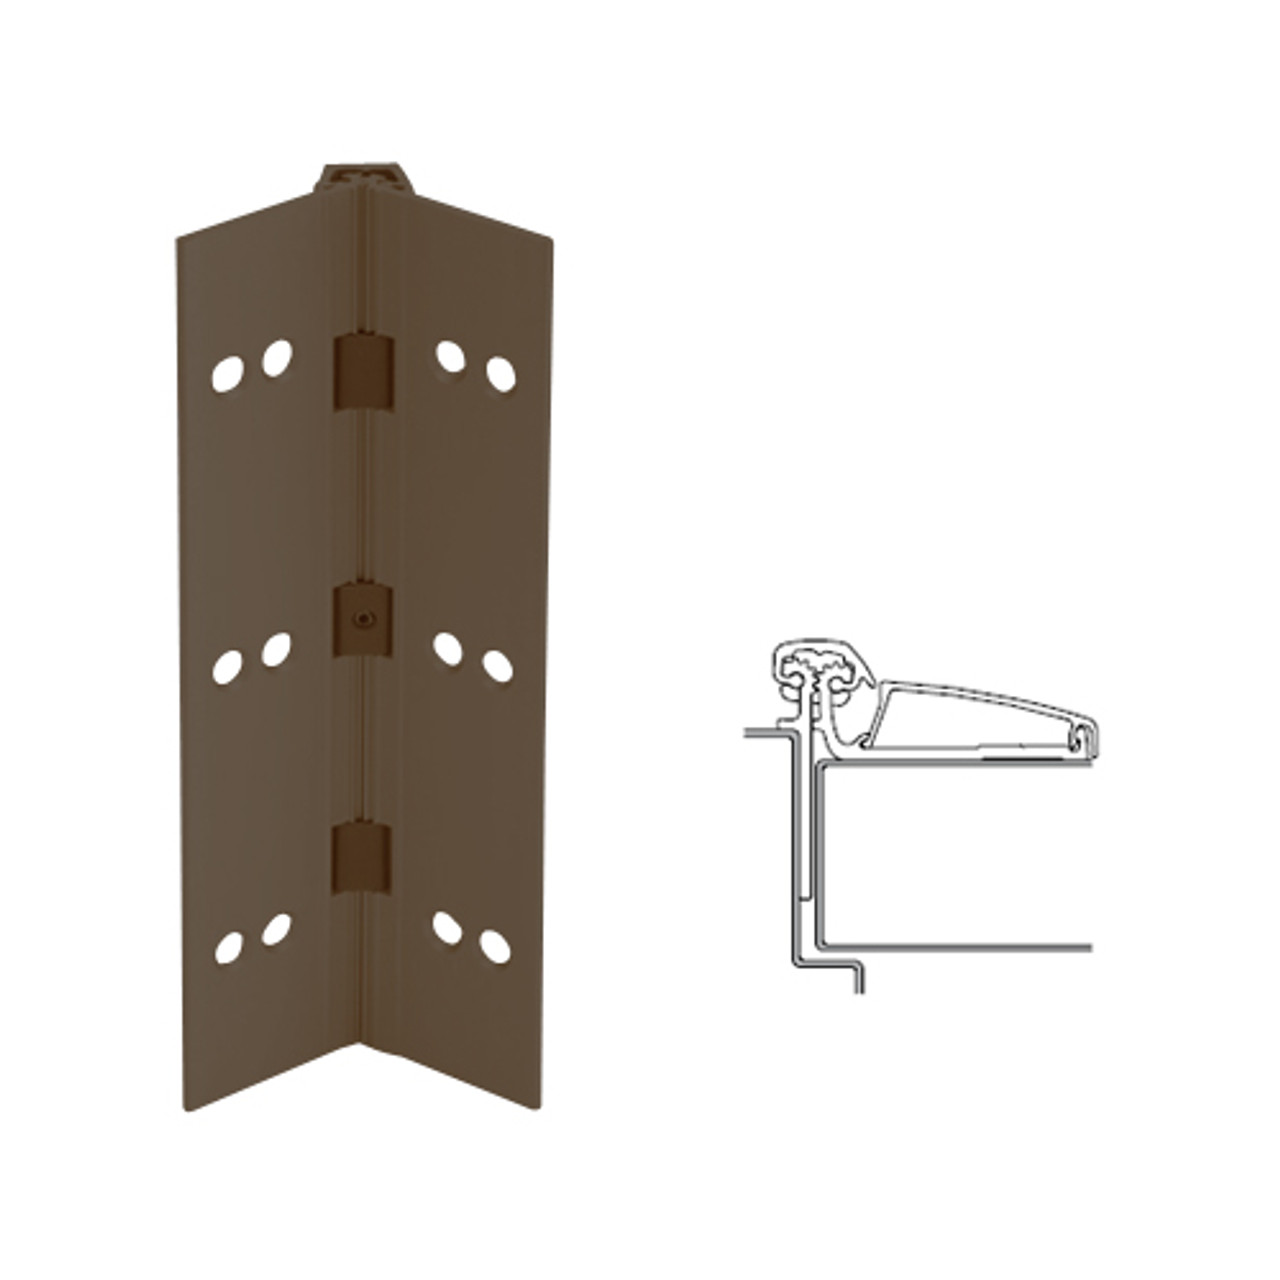 045XY-313AN-83-WD IVES Adjustable Half Surface Continuous Geared Hinges with Wood Screws in Dark Bronze Anodized